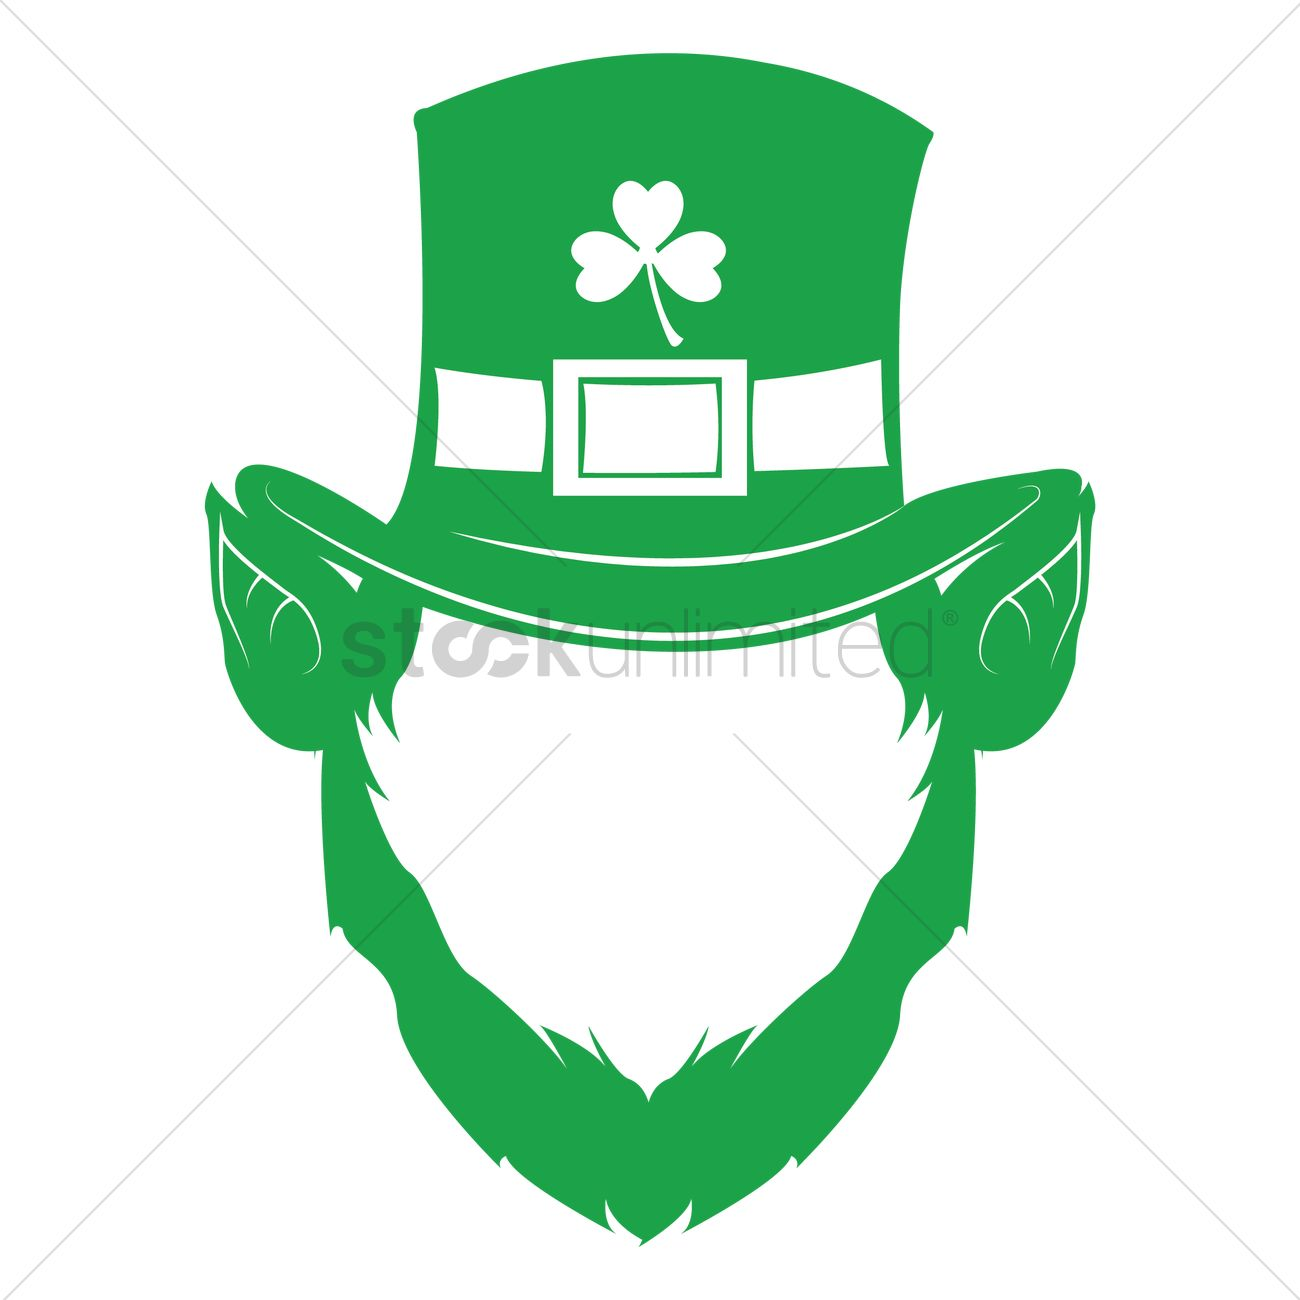 leprechaun face with hat and beard vector image 1495419 rh stockunlimited com leprechaun vector free leprechaun hat vector